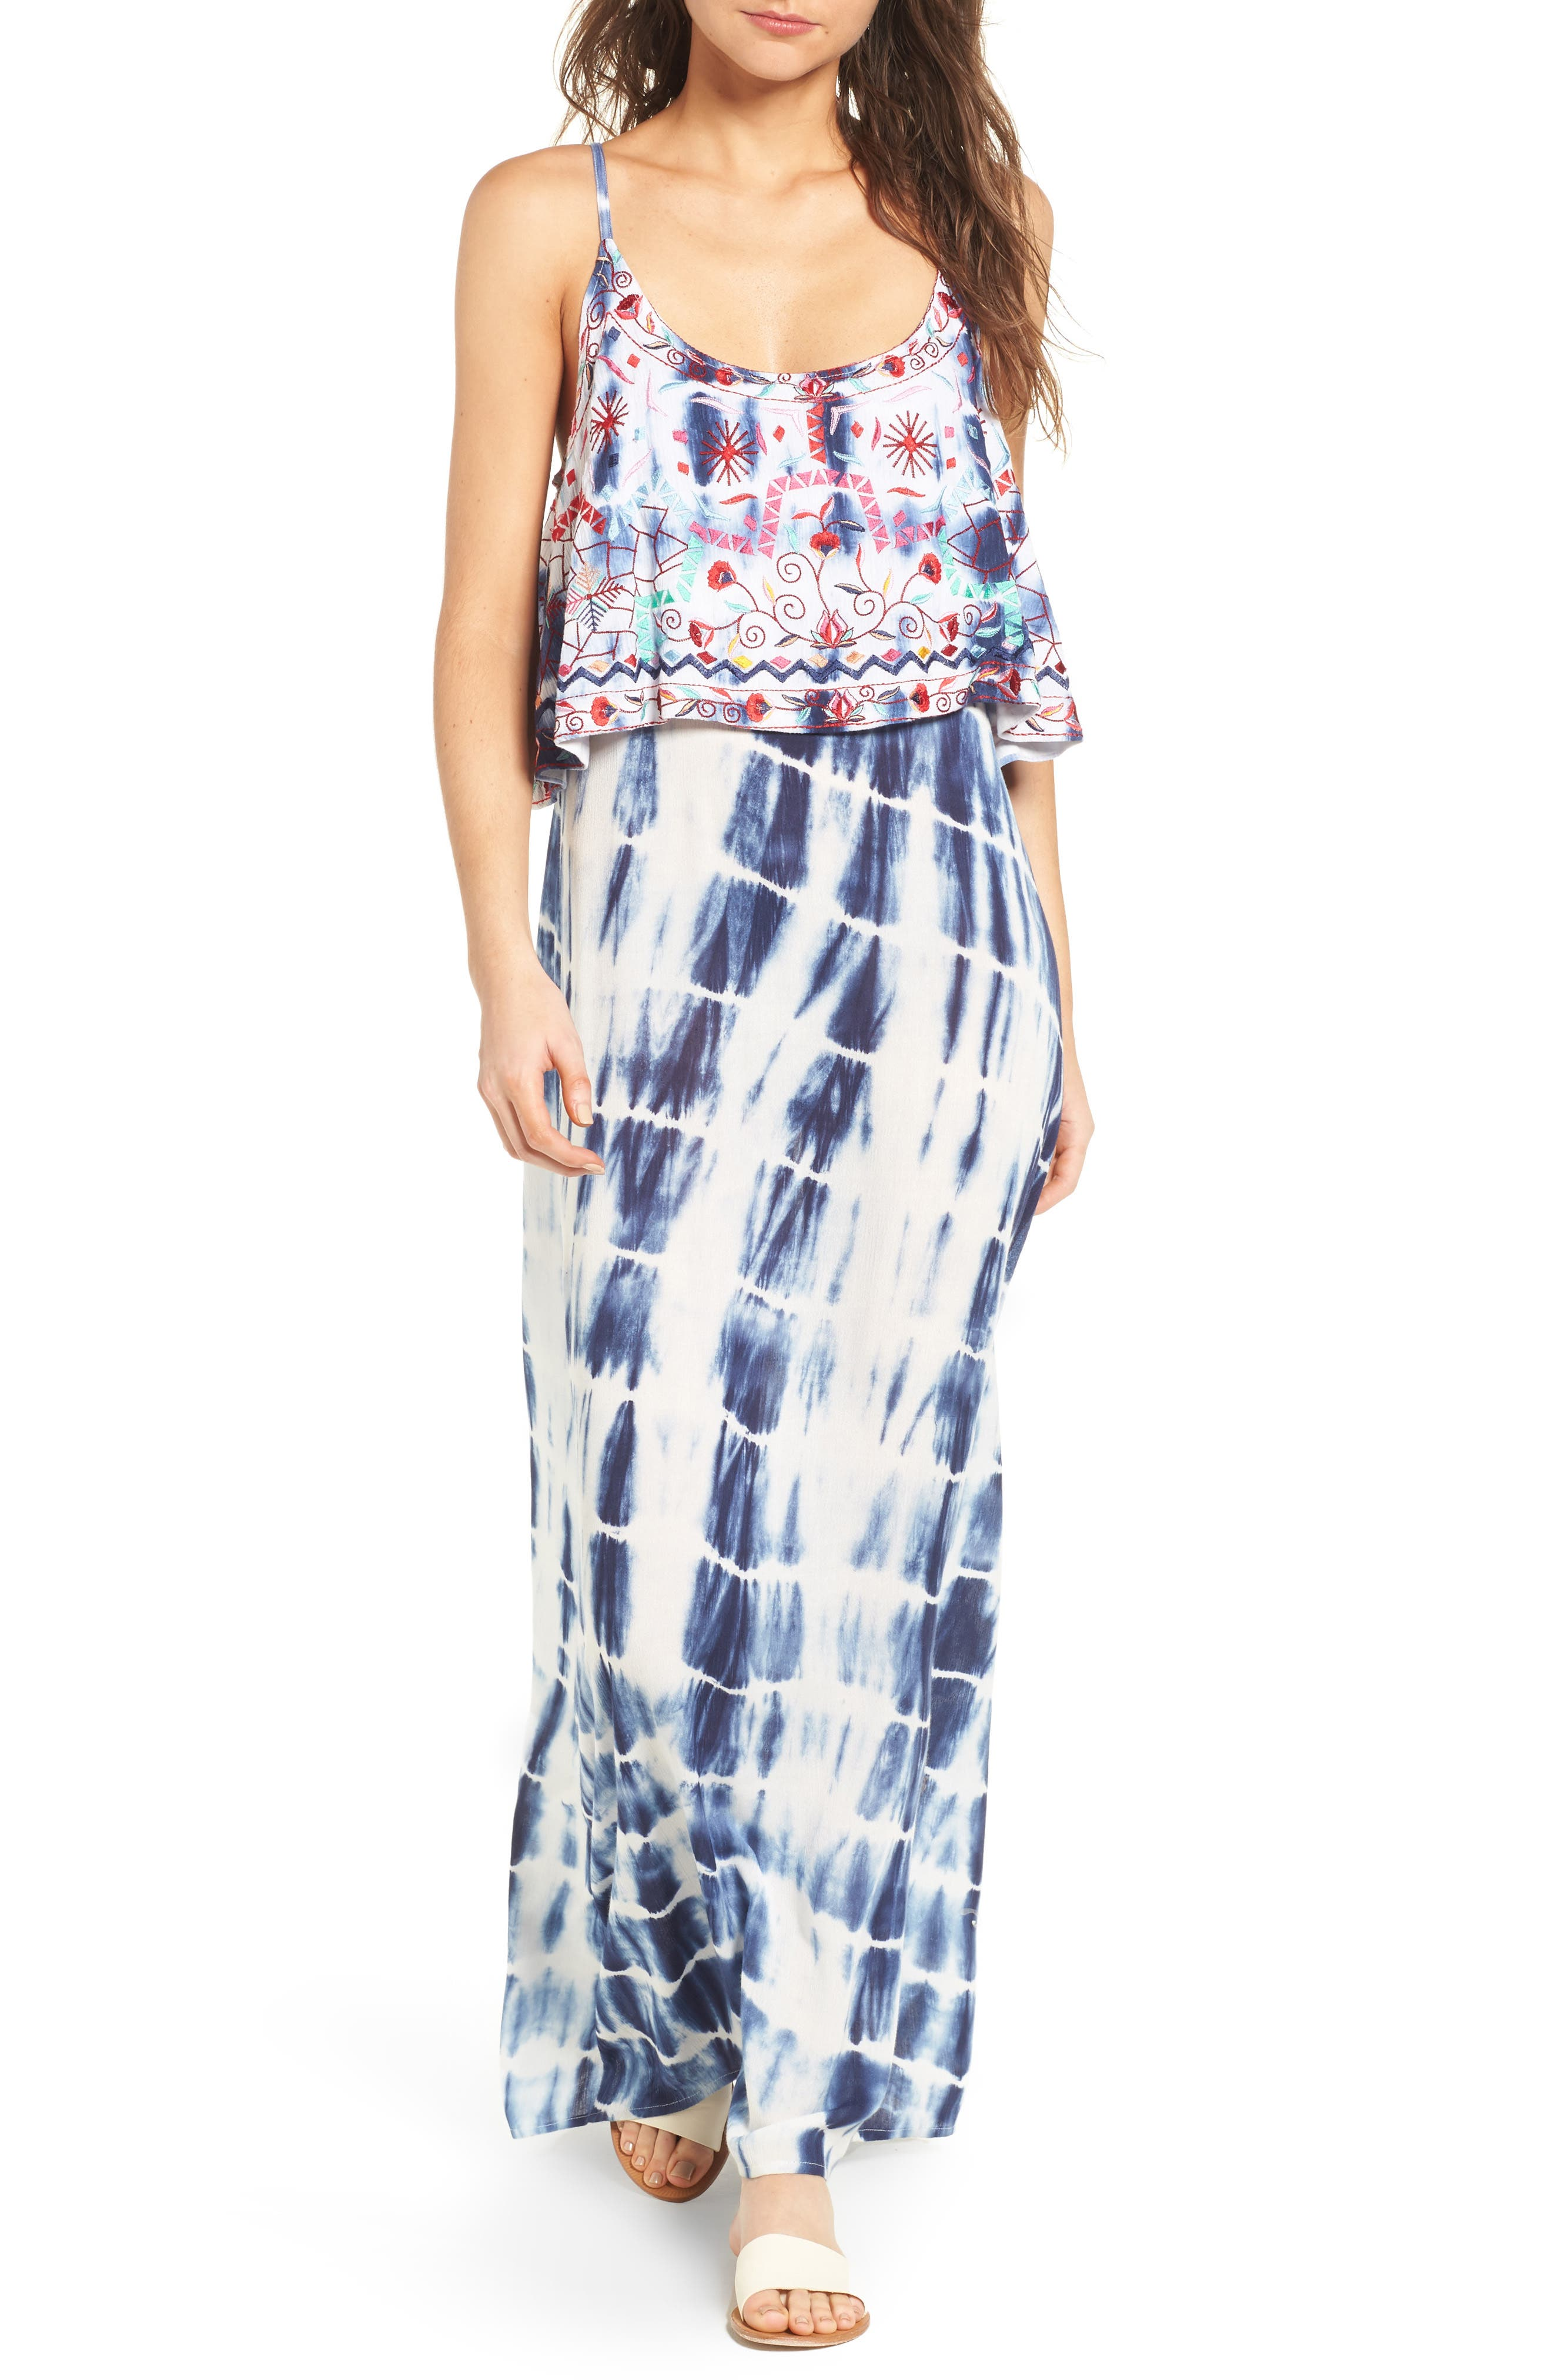 Catching The Waves Embroidered Maxi Dress,                         Main,                         color, Multi